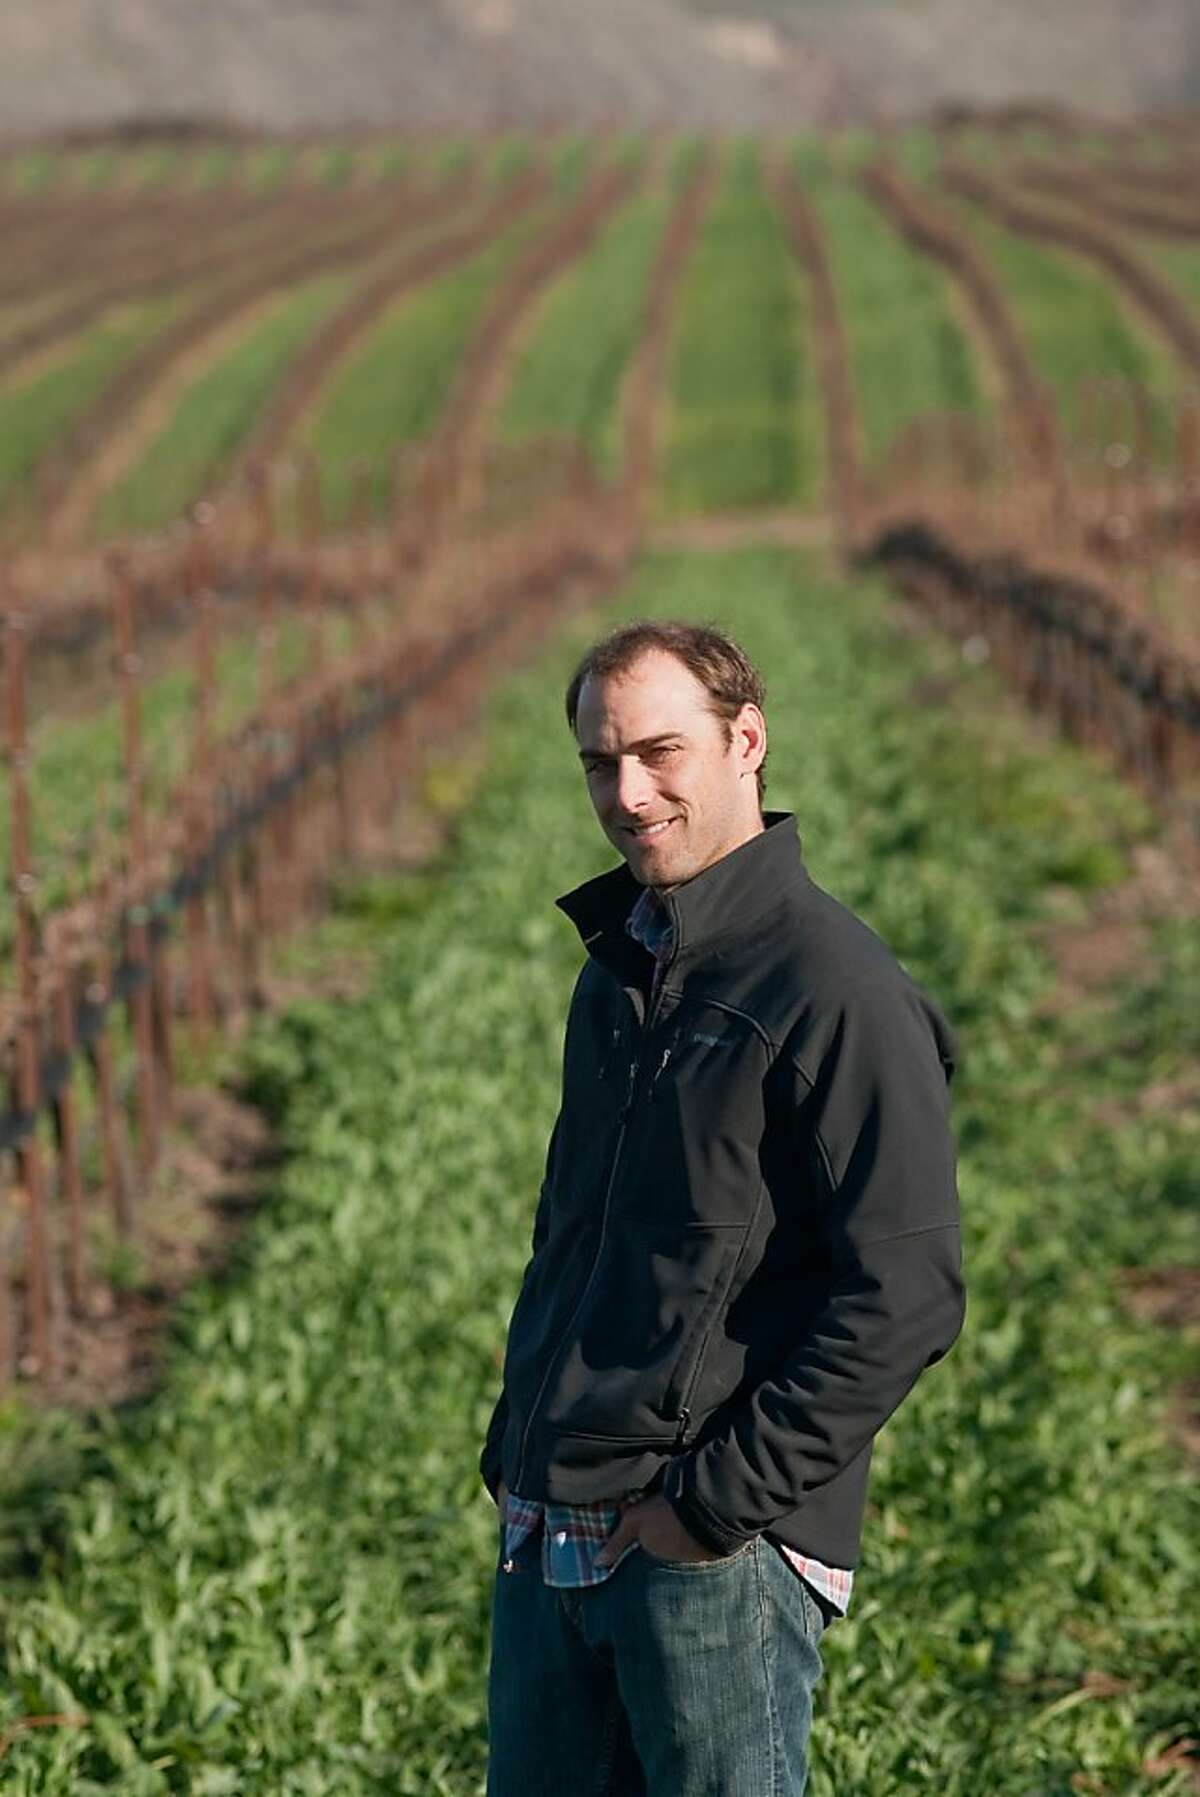 Justin Willett of Tyler Winery at the La Encantada vineyard on Santa Rosa Road off Hwy. 246 between Buellton and Lompoc. The vineyards in the Sta. Rita Hills is known for its chardonnay and pinot noir. (photo by Joe Gosen / Special to the Chronicle)